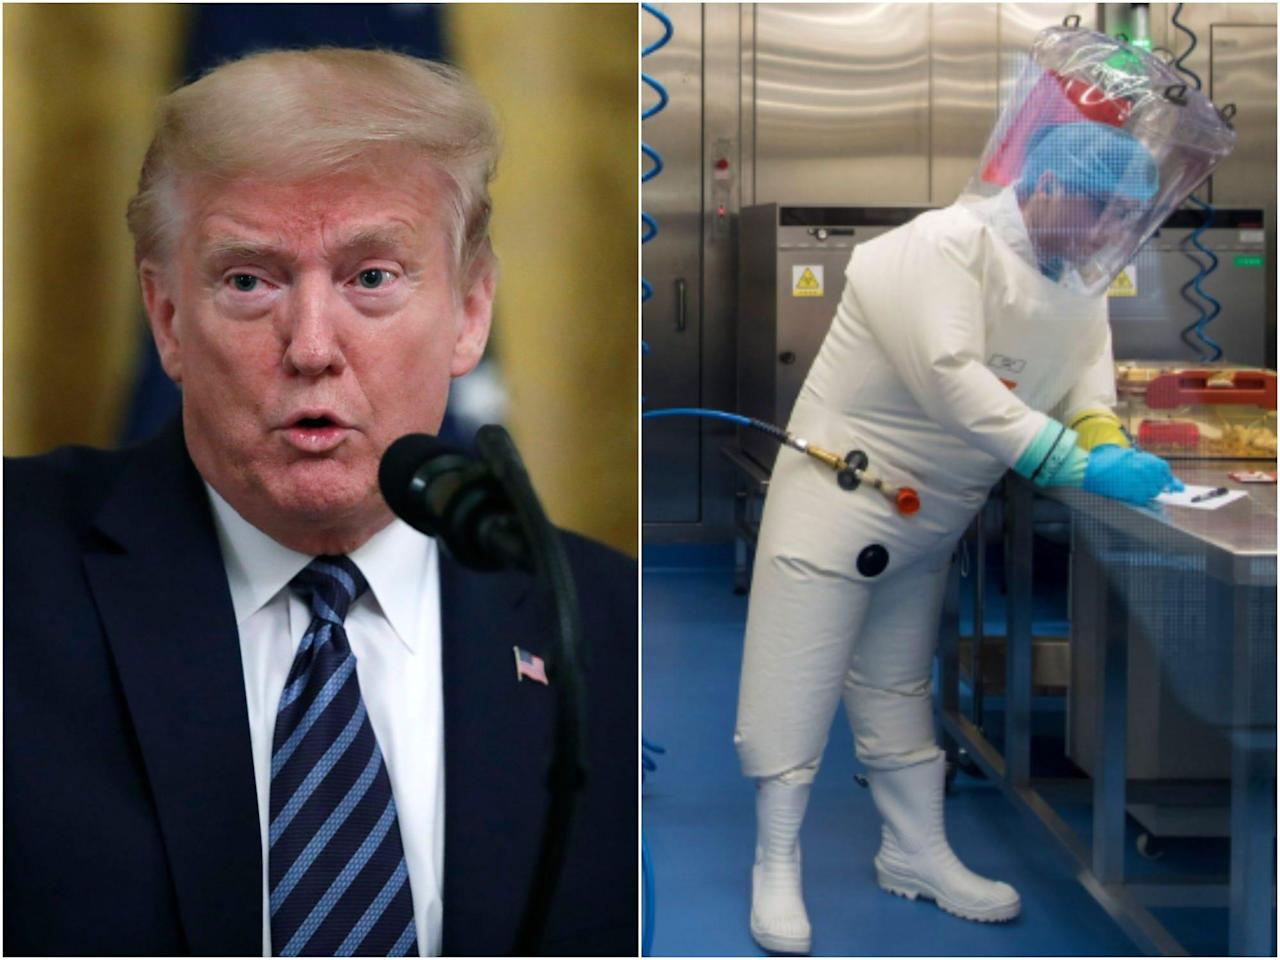 Intelligence officials and disease experts are shooting down Trump's claim that the US has good reason to believe the coronavirus originated in a Wuhan lab